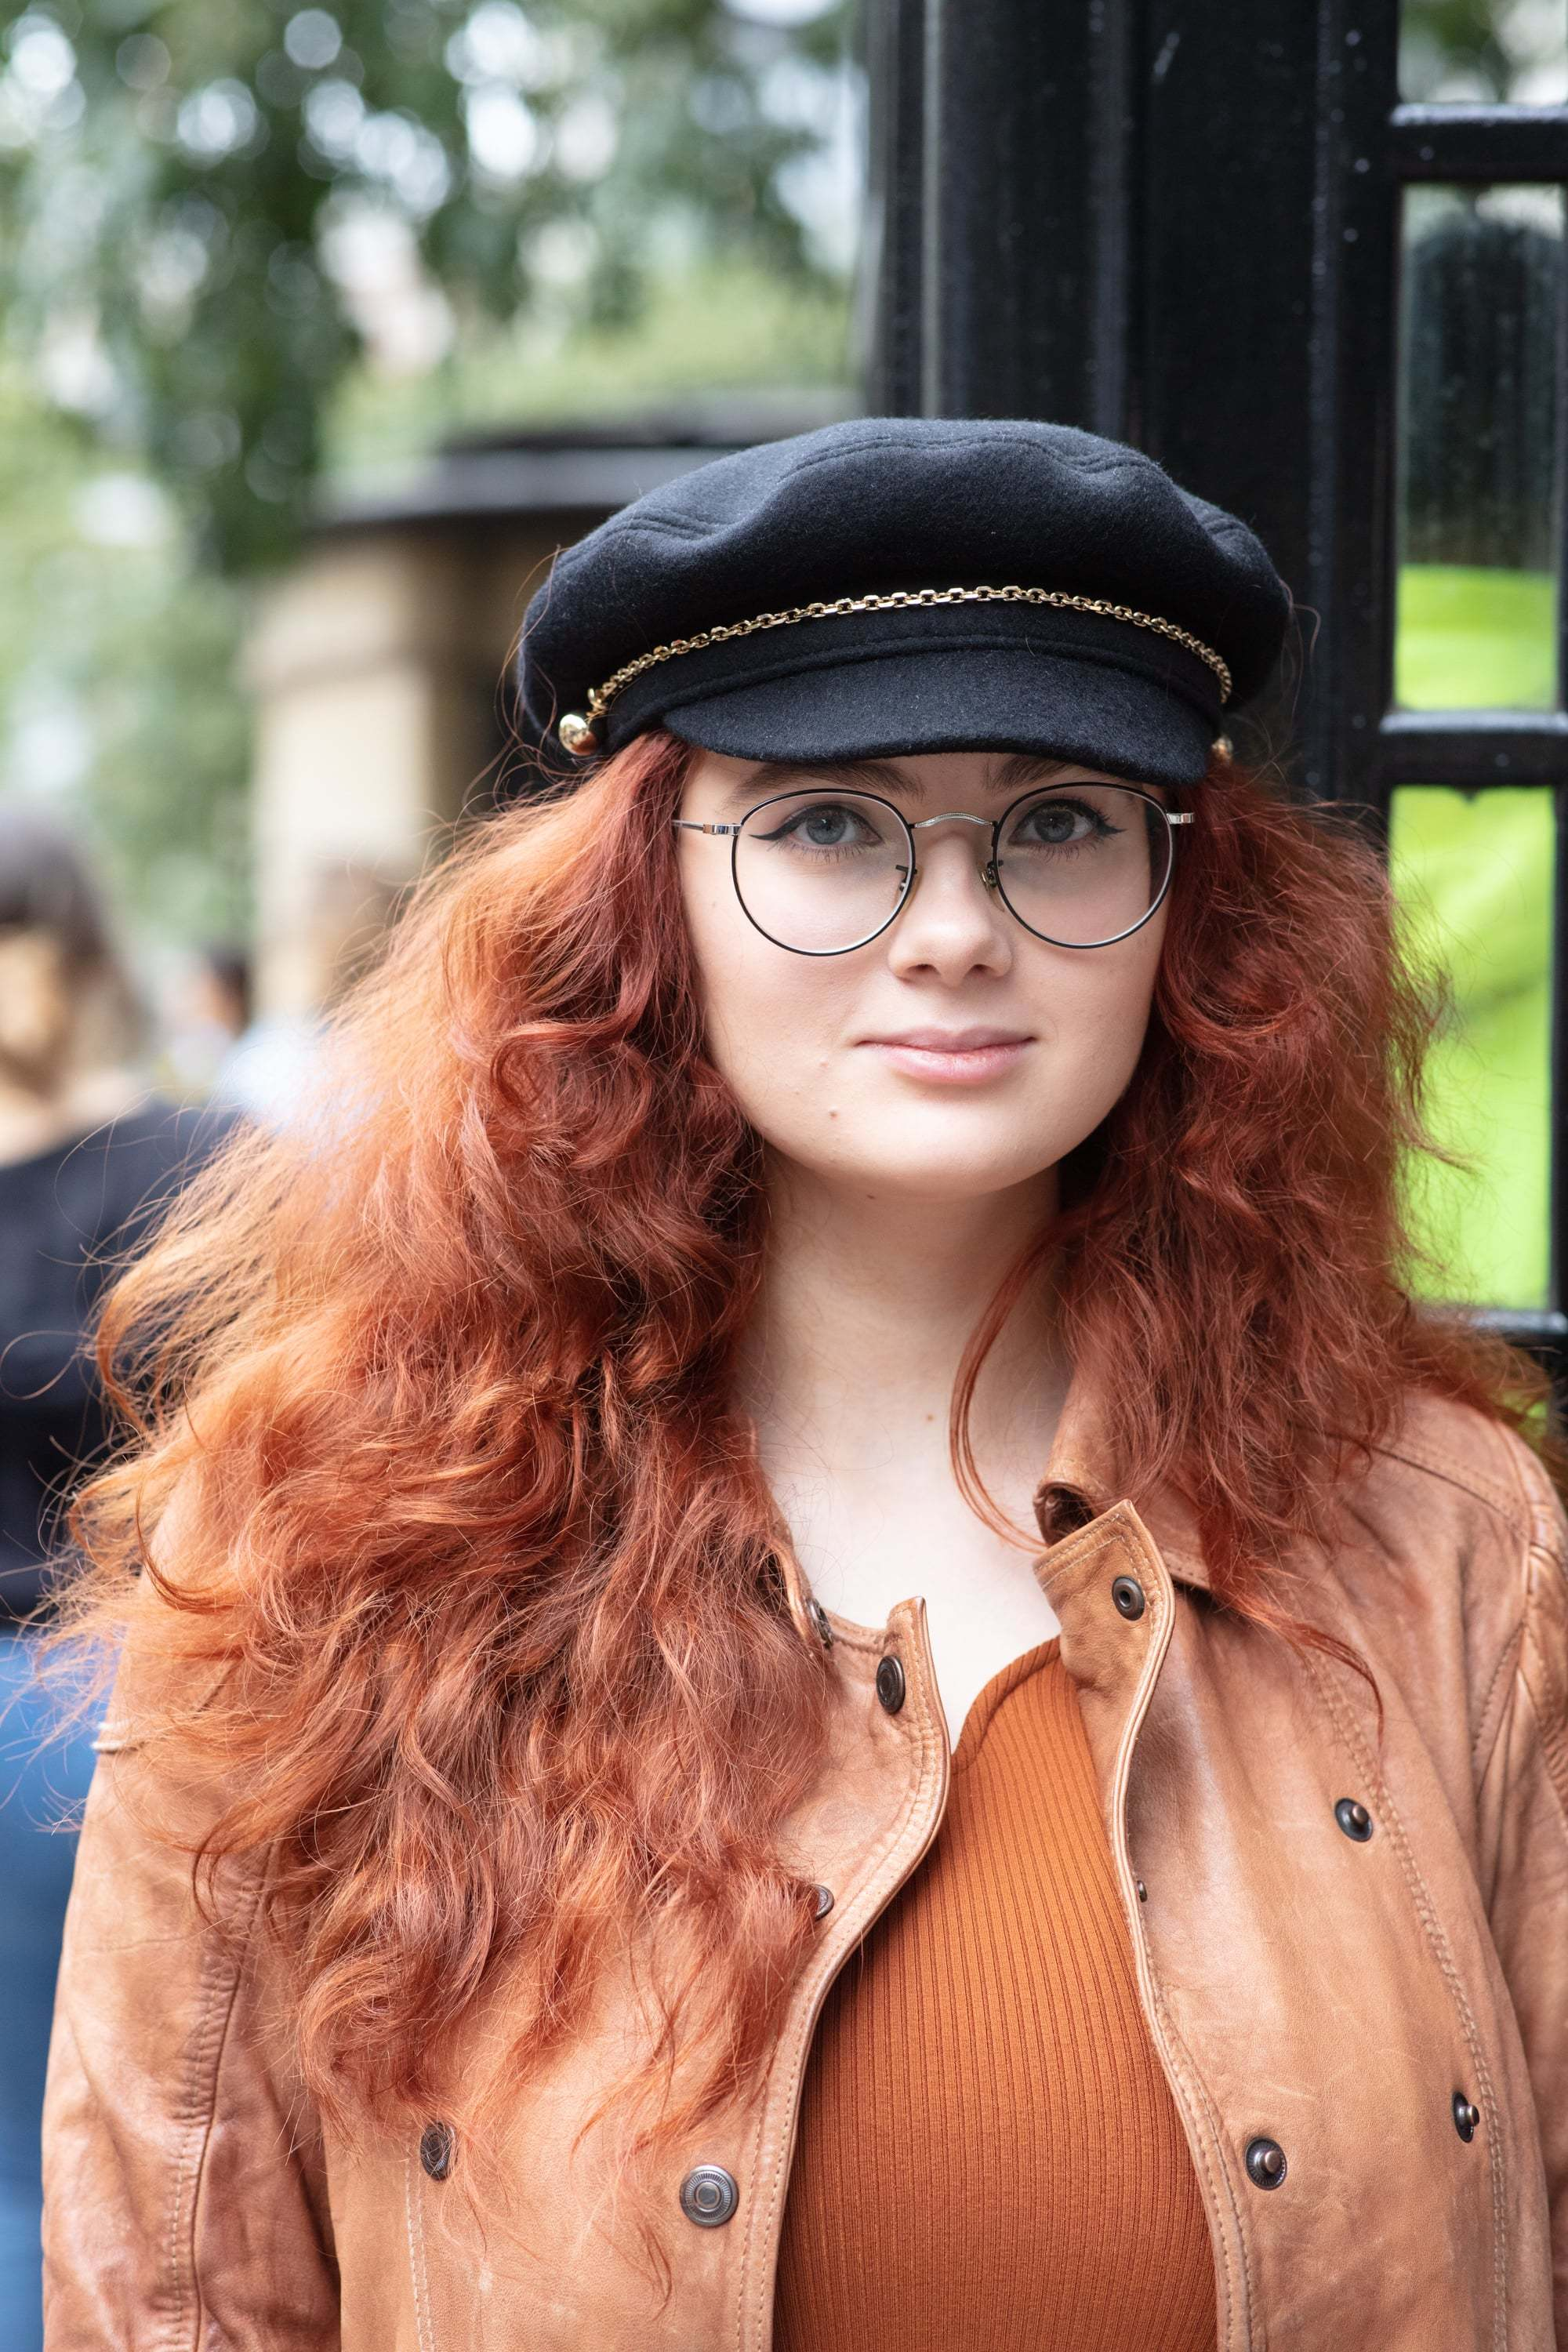 Hair treatment guide: Woman with long curly copper hair, wearing beige jacket with a baker boy hat